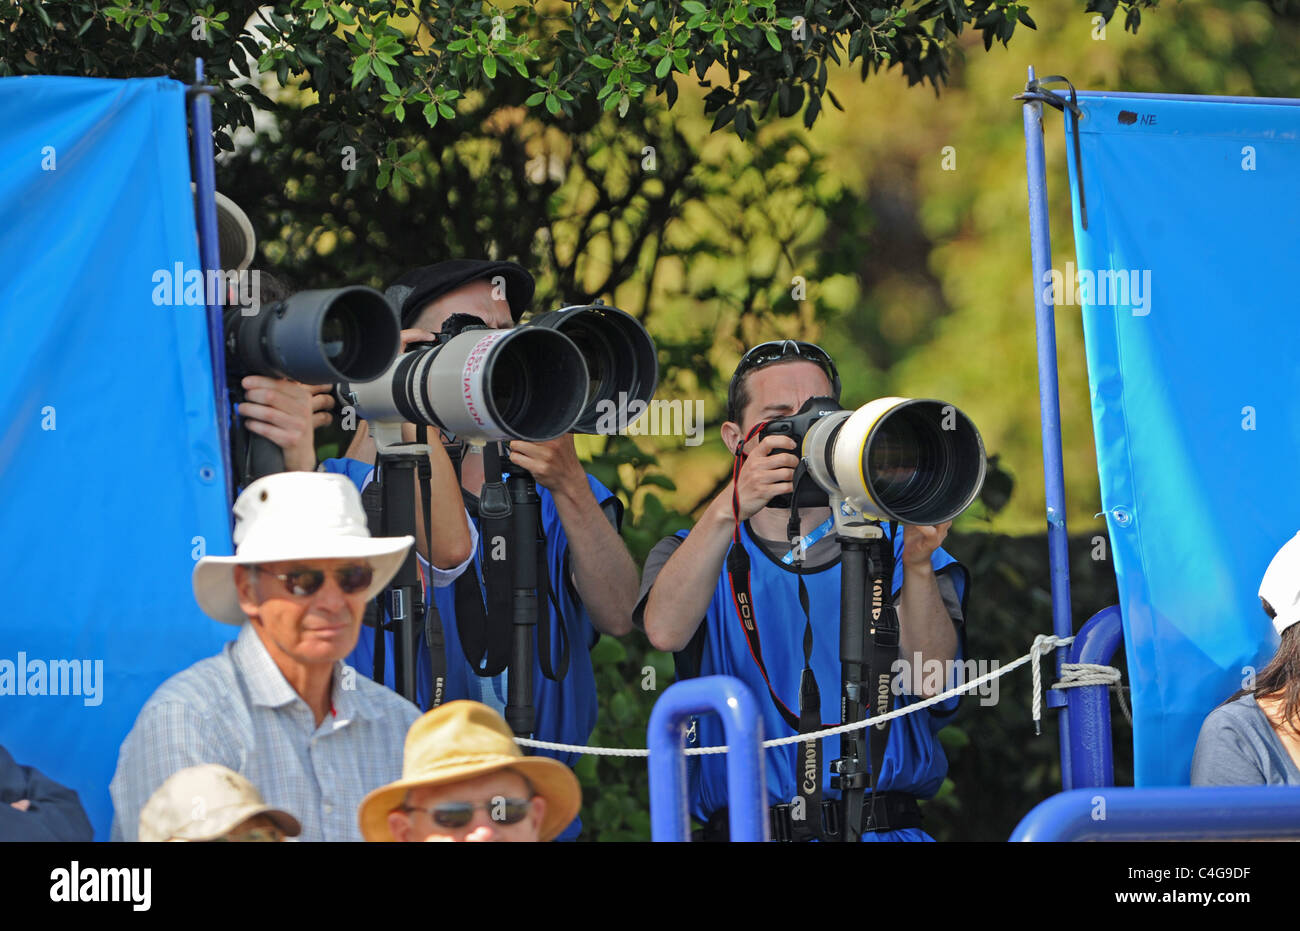 Photographers with long lenses at the Aegon International tennis championships in Eastbourne UK 2011 Stock Photo